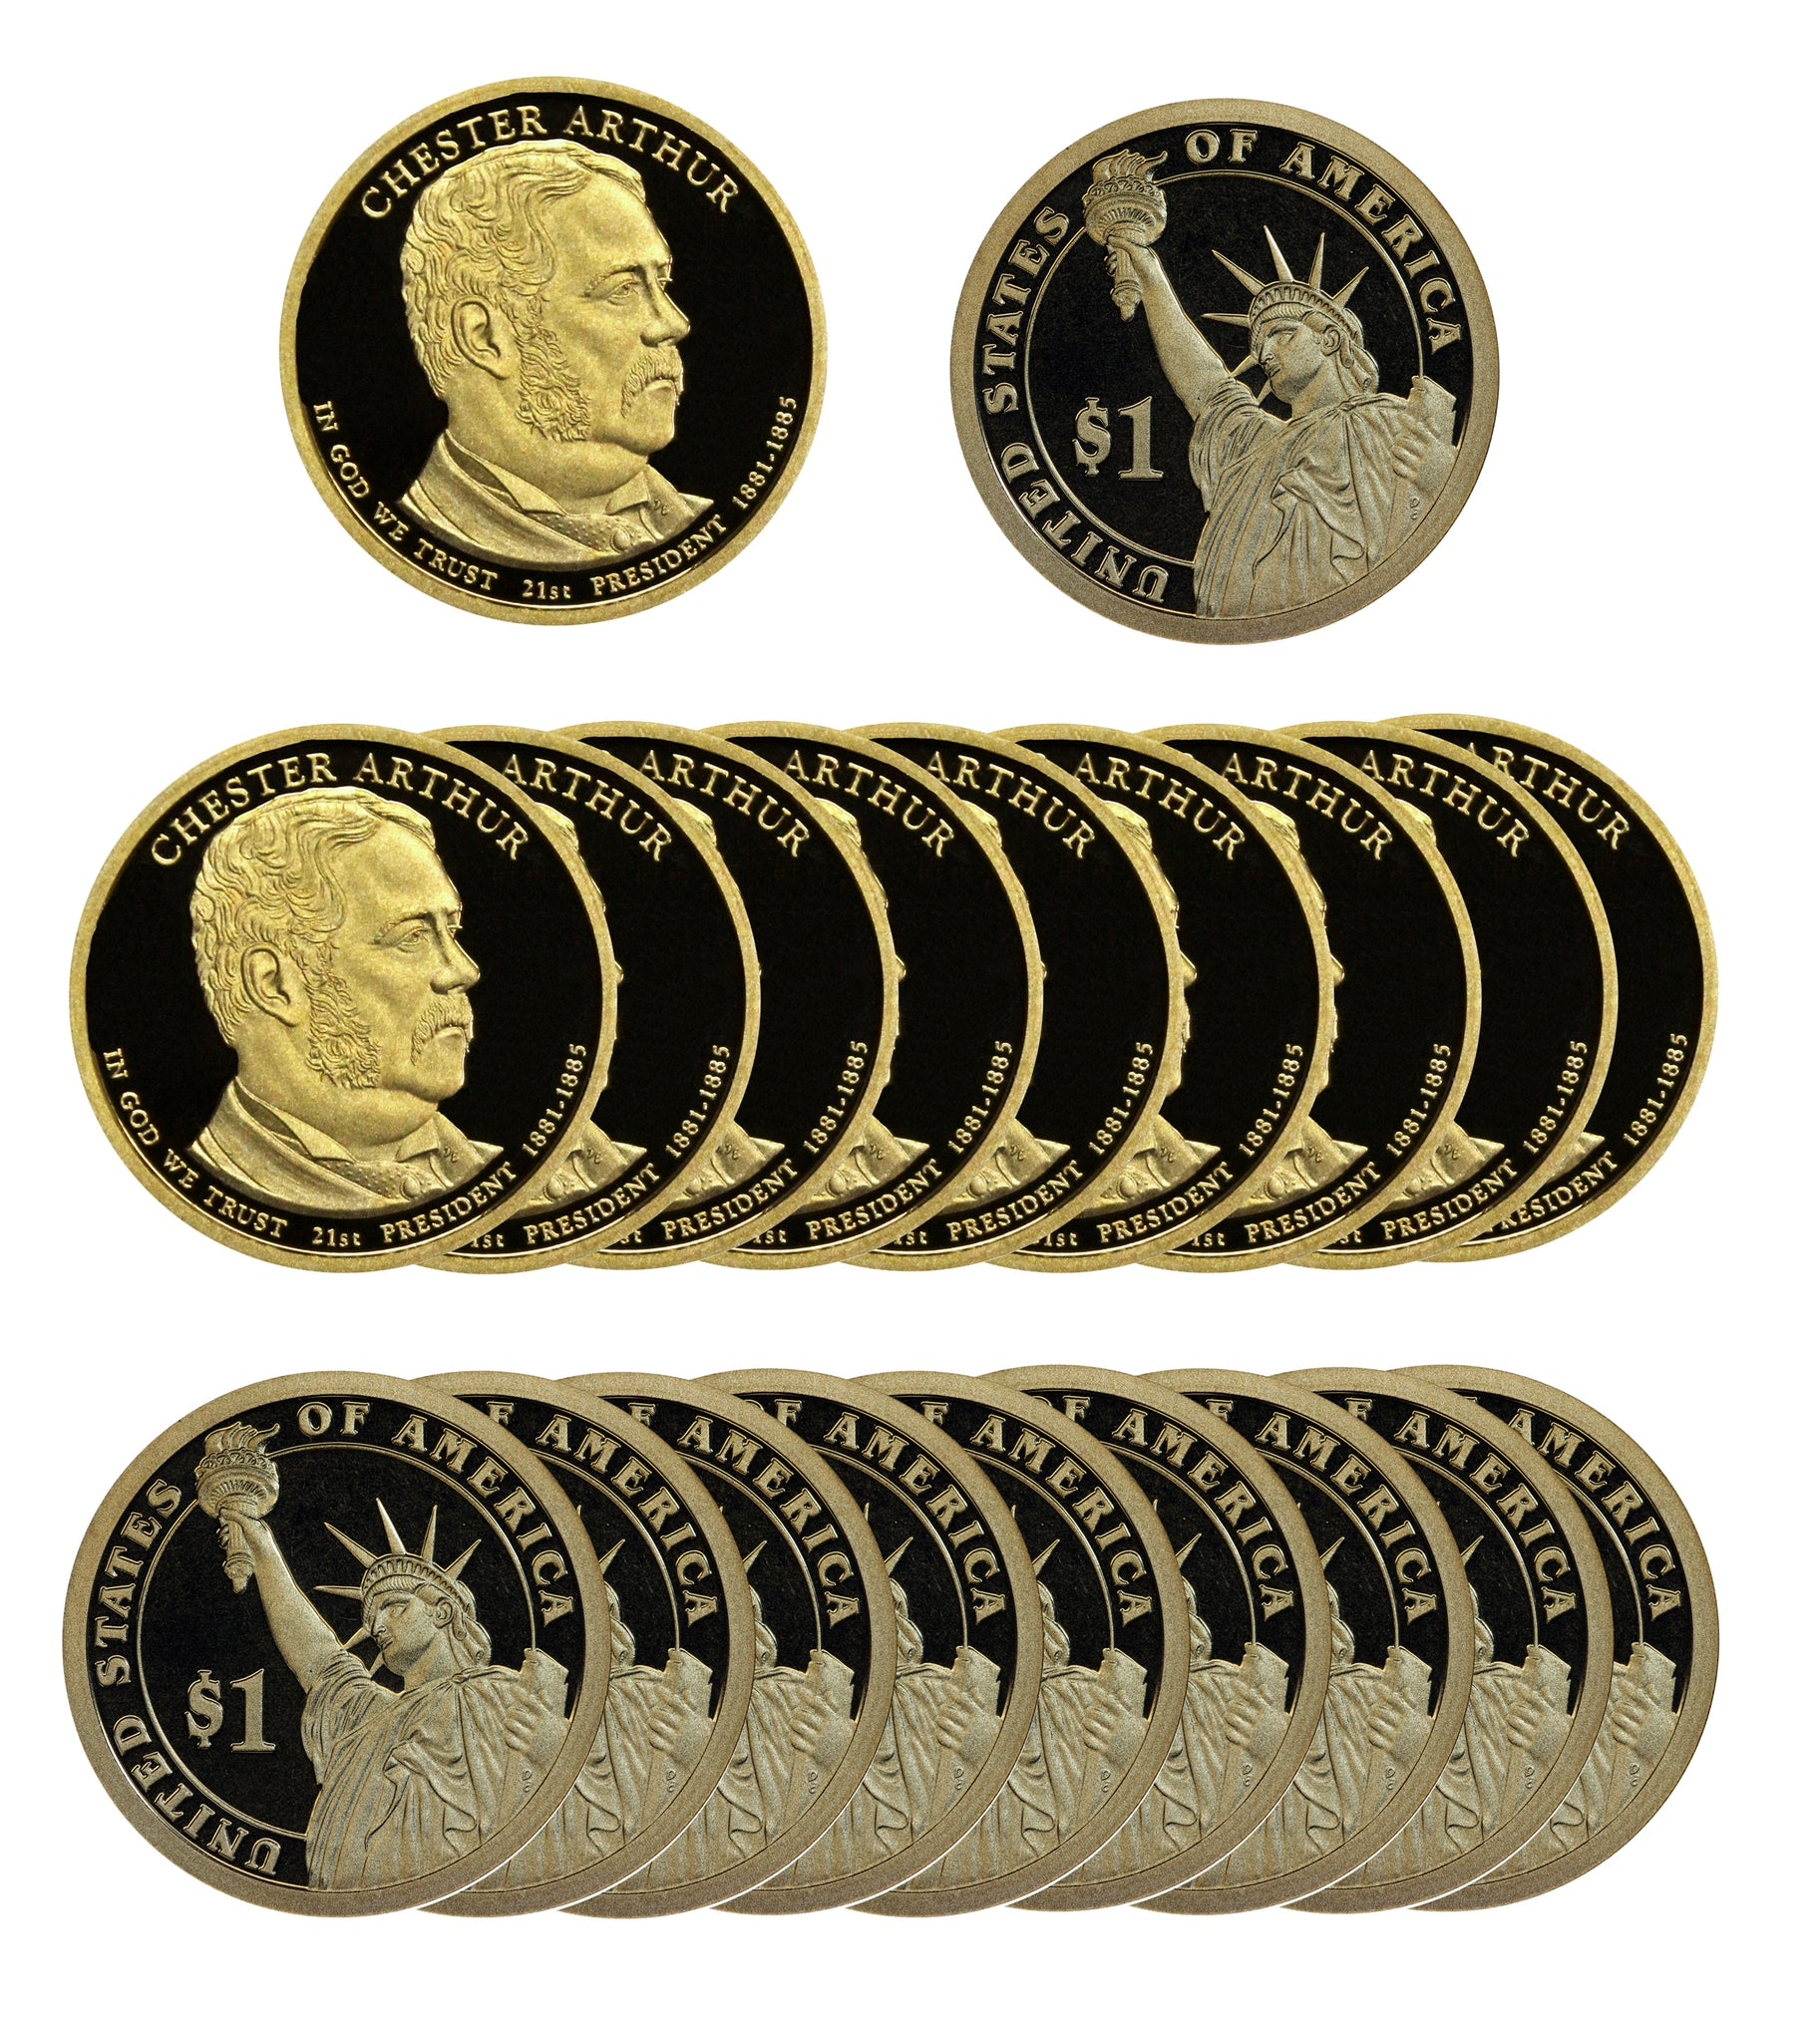 2012 S Chester Arthur Presidential Dollar Proof Roll (20 Coins)